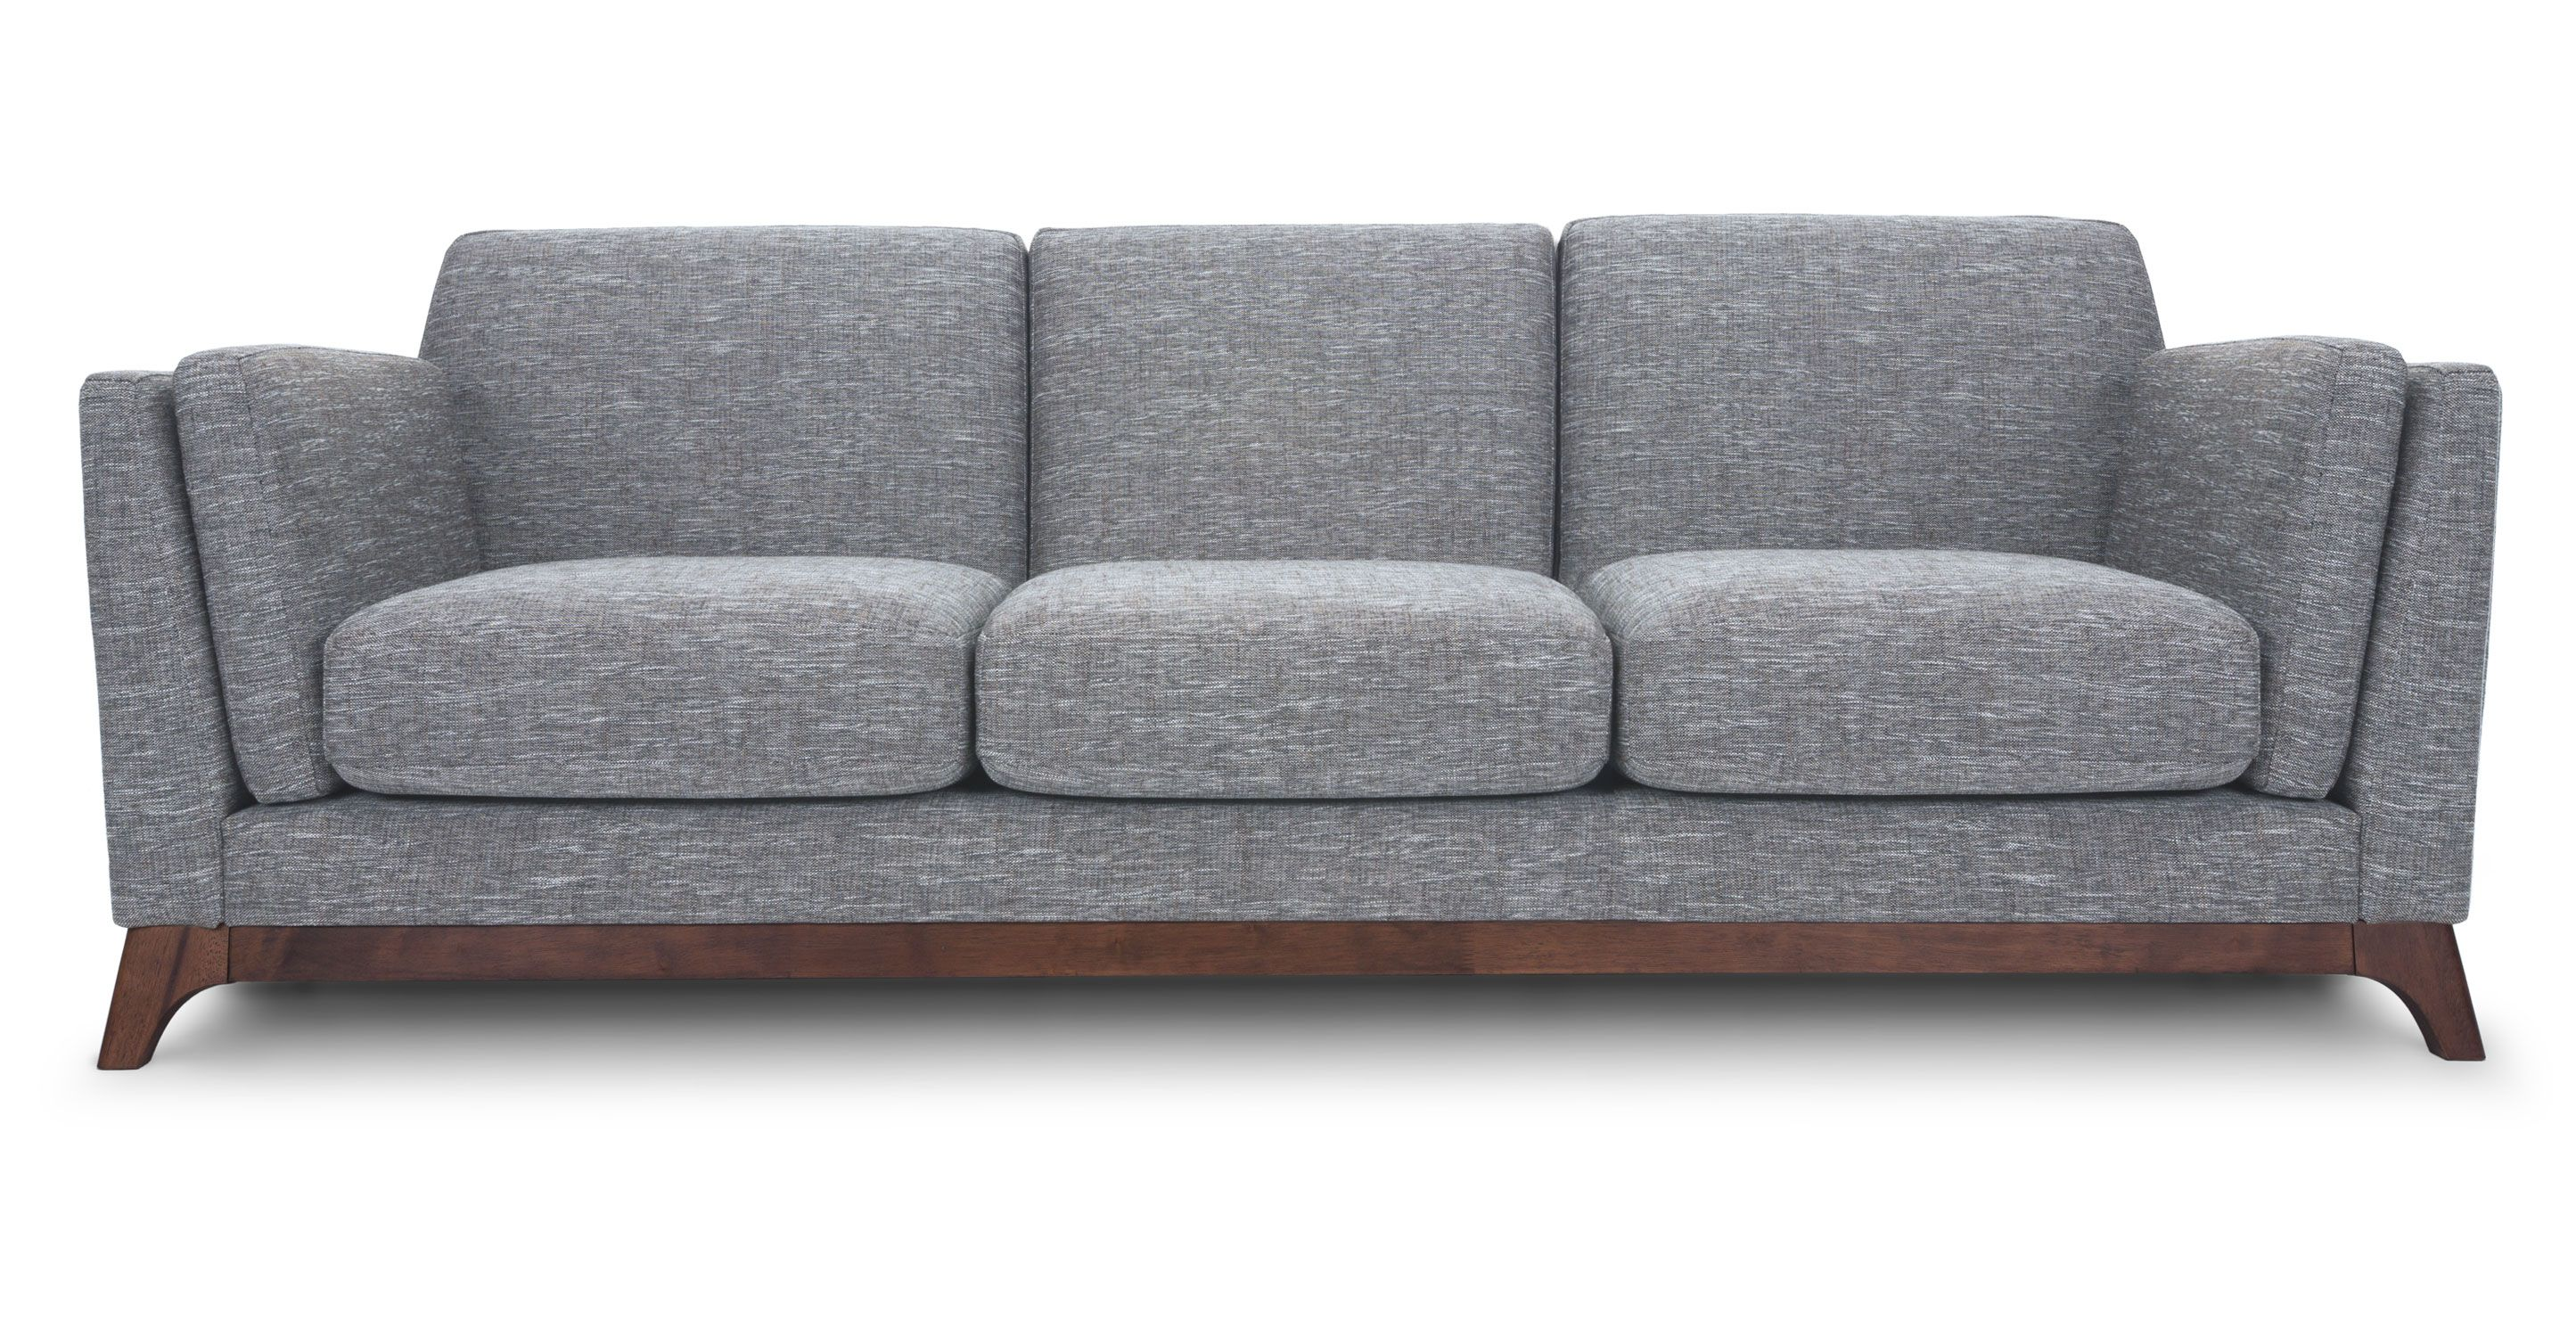 contemporary grey sofa bed gus atwood gray 3 seater with solid wood legs article ceni